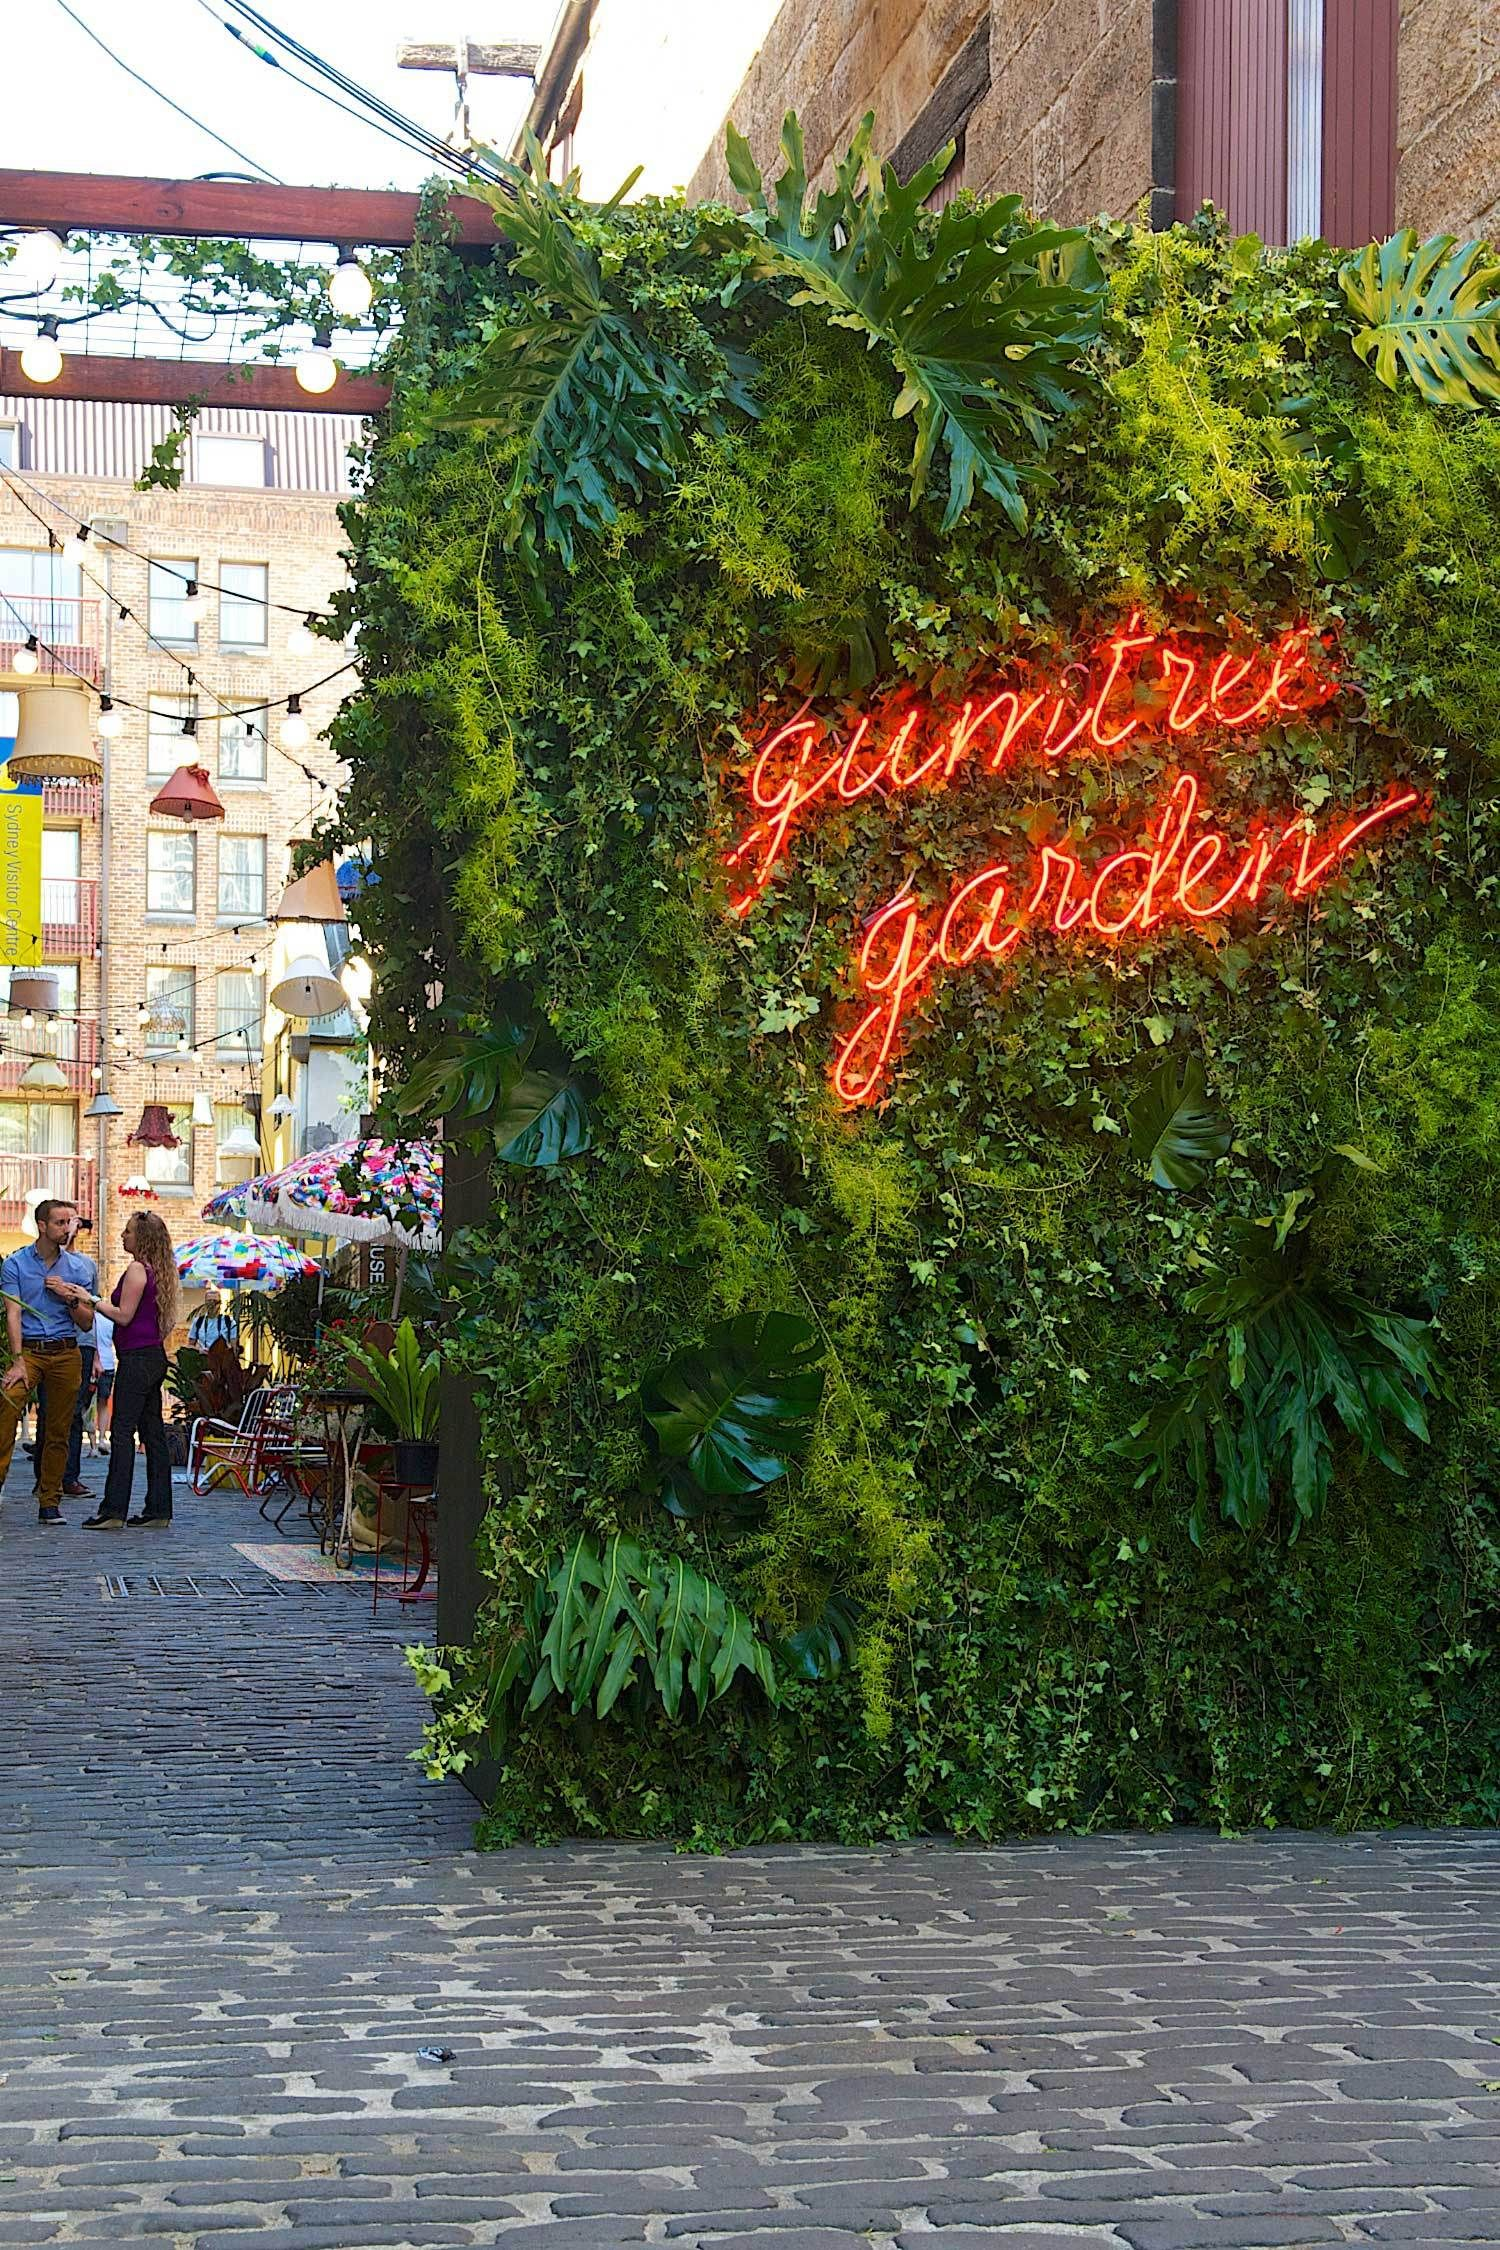 Gumtree Garden PopUp Bar by Yellowtrace. Exterior